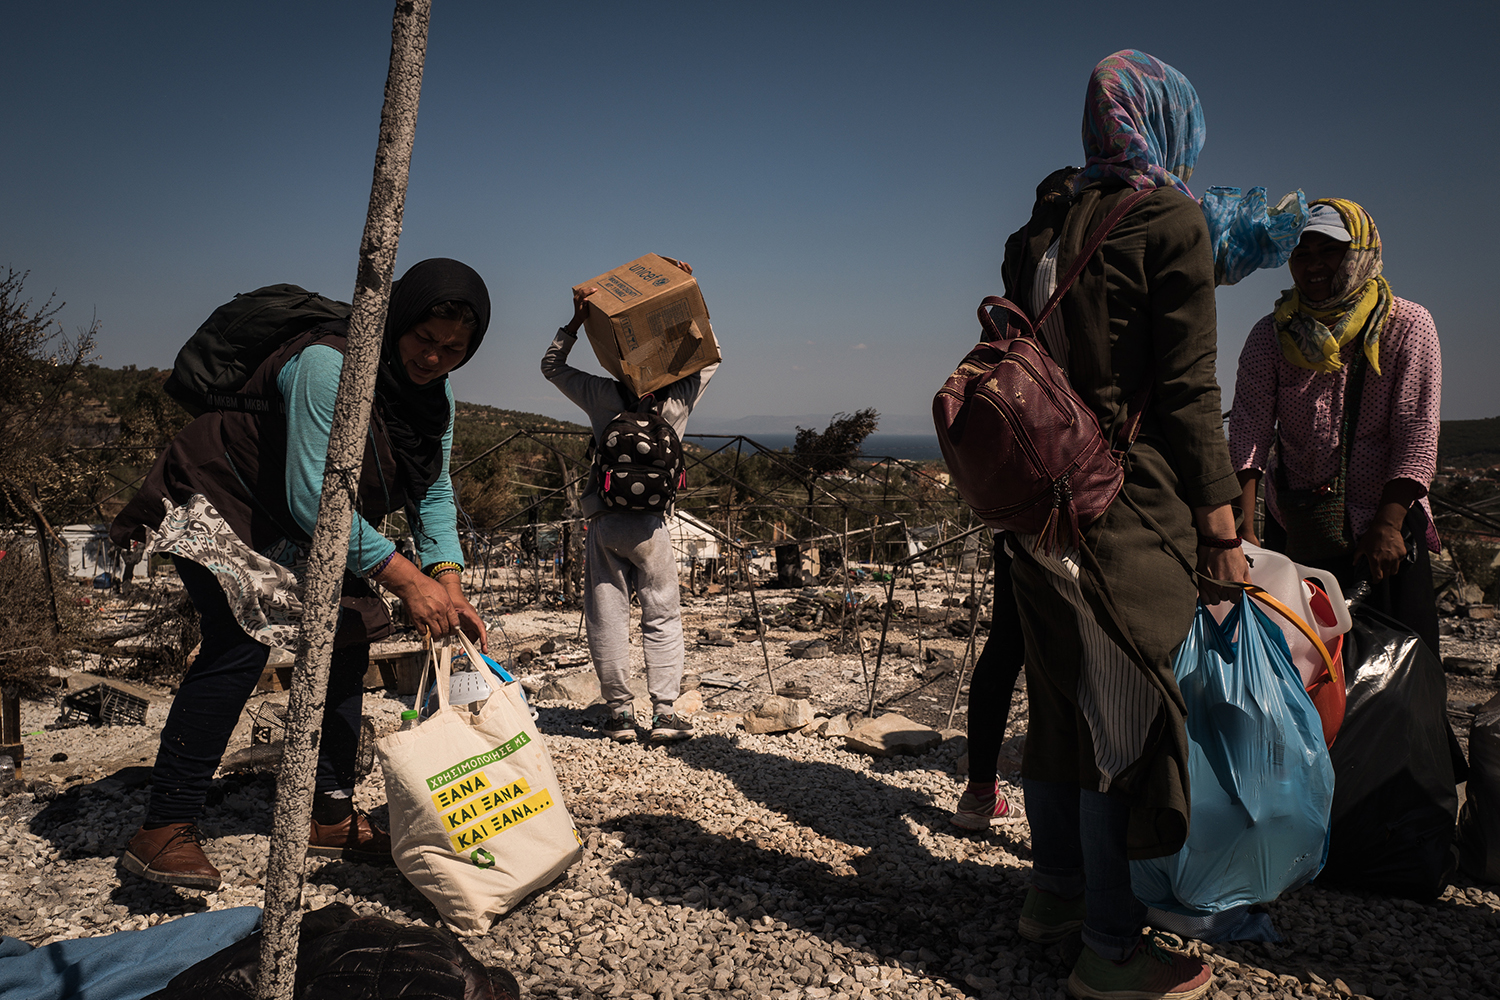 Afghan women collect their belongings from the Moria camp to bring to the new Kara Tepe facility on Sept. 14.